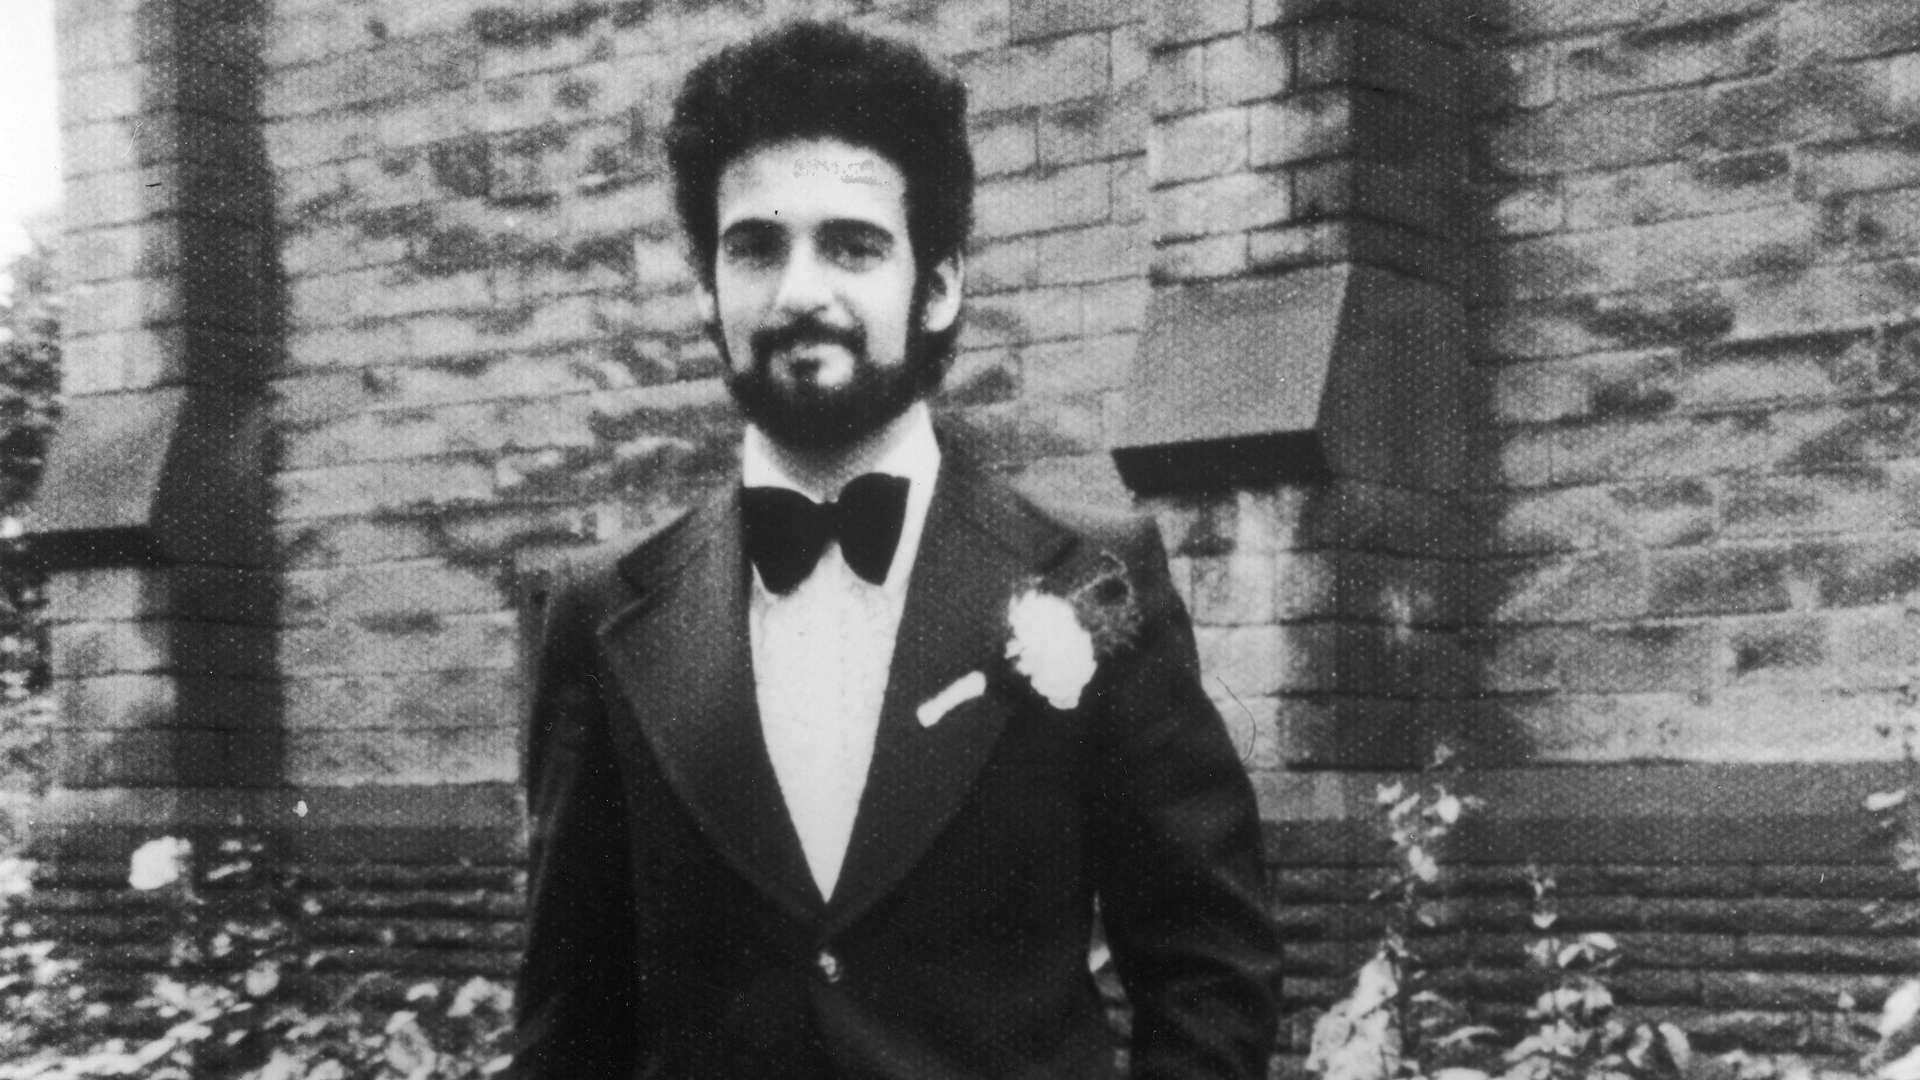 Yorkshire Ripper Peter Sutcliffe: What Were His Early Years Like?